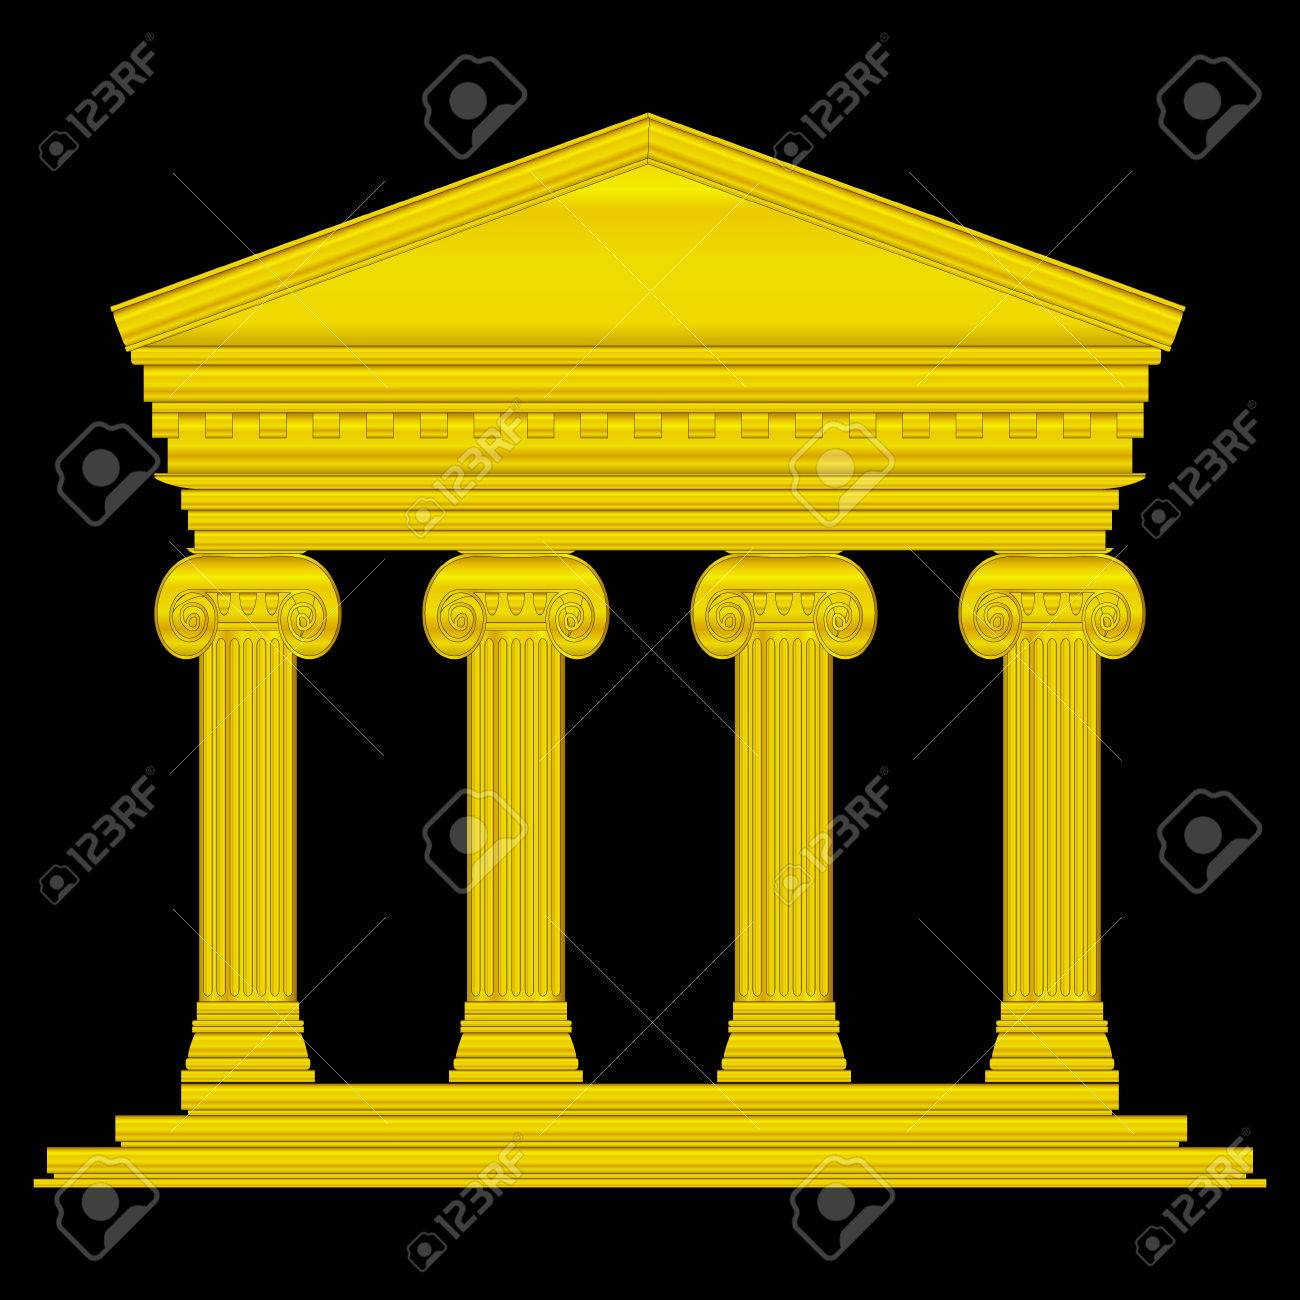 Gold ionic temple isolated on black background. Stock Vector - 27273991